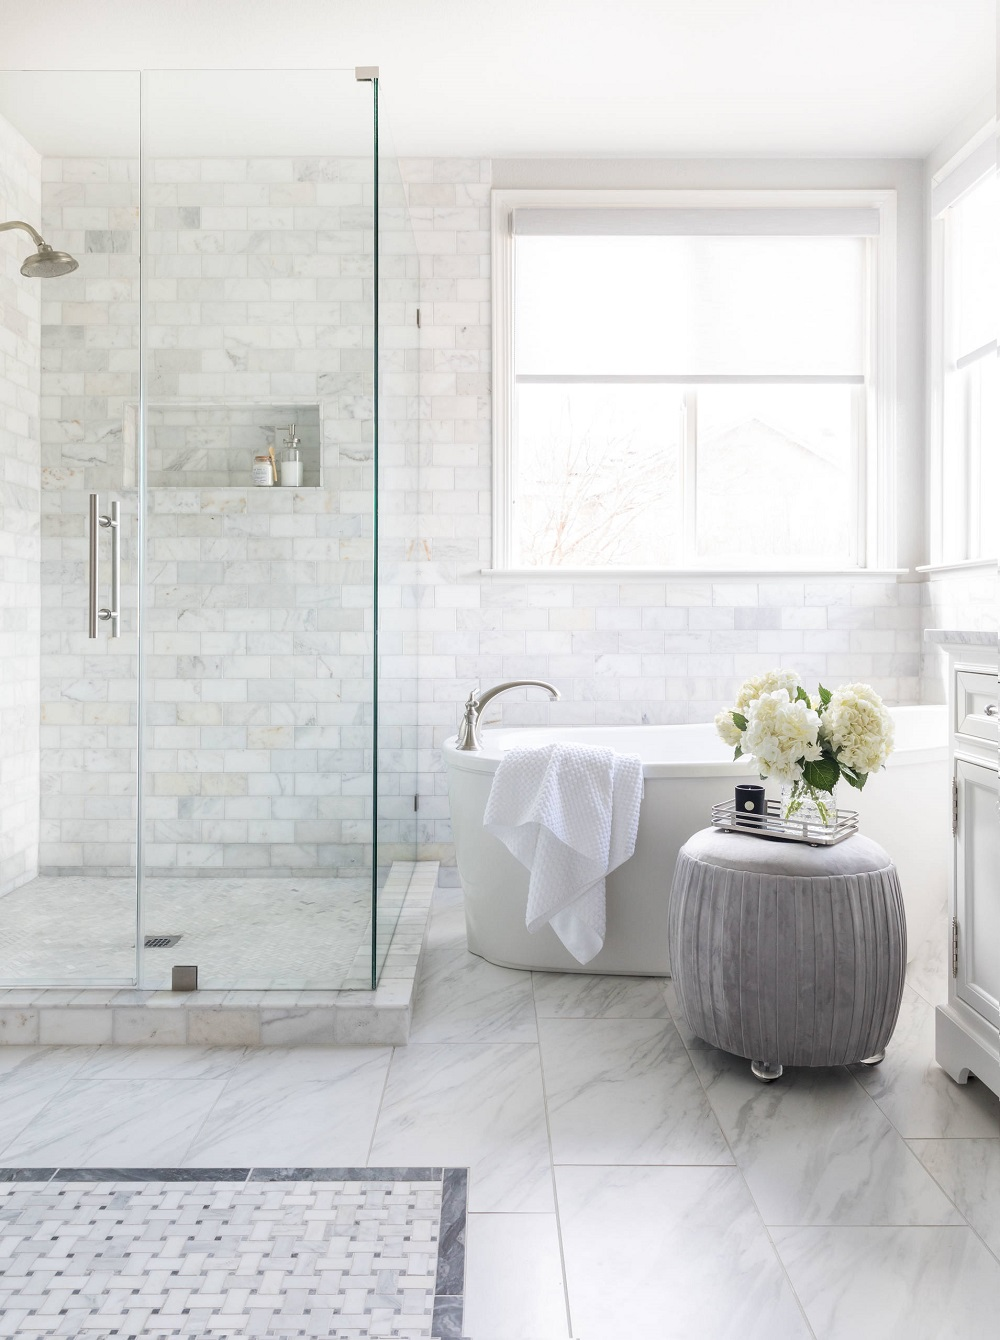 wb7 ideas and tips for walk-in showers (cost, size and more)